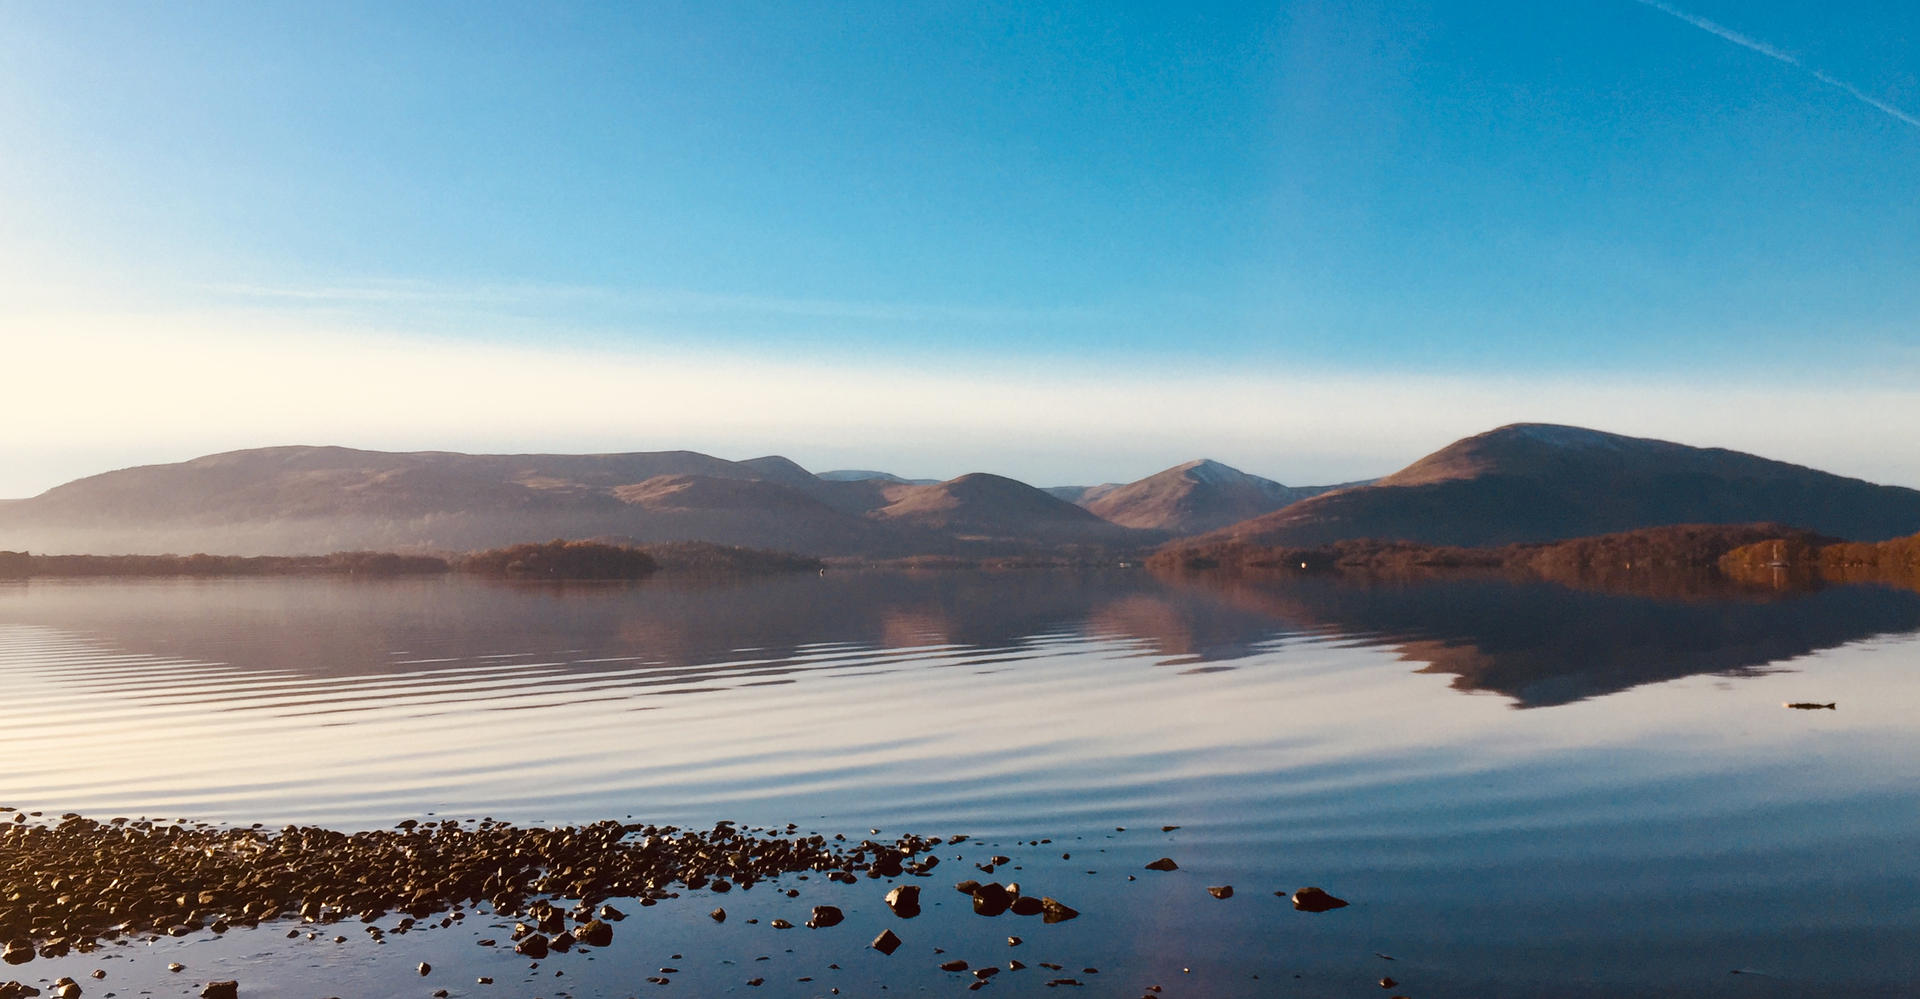 Loch lomond in scotland from Millarochy Bay with calm loch and clear blue skye and ripples on still water